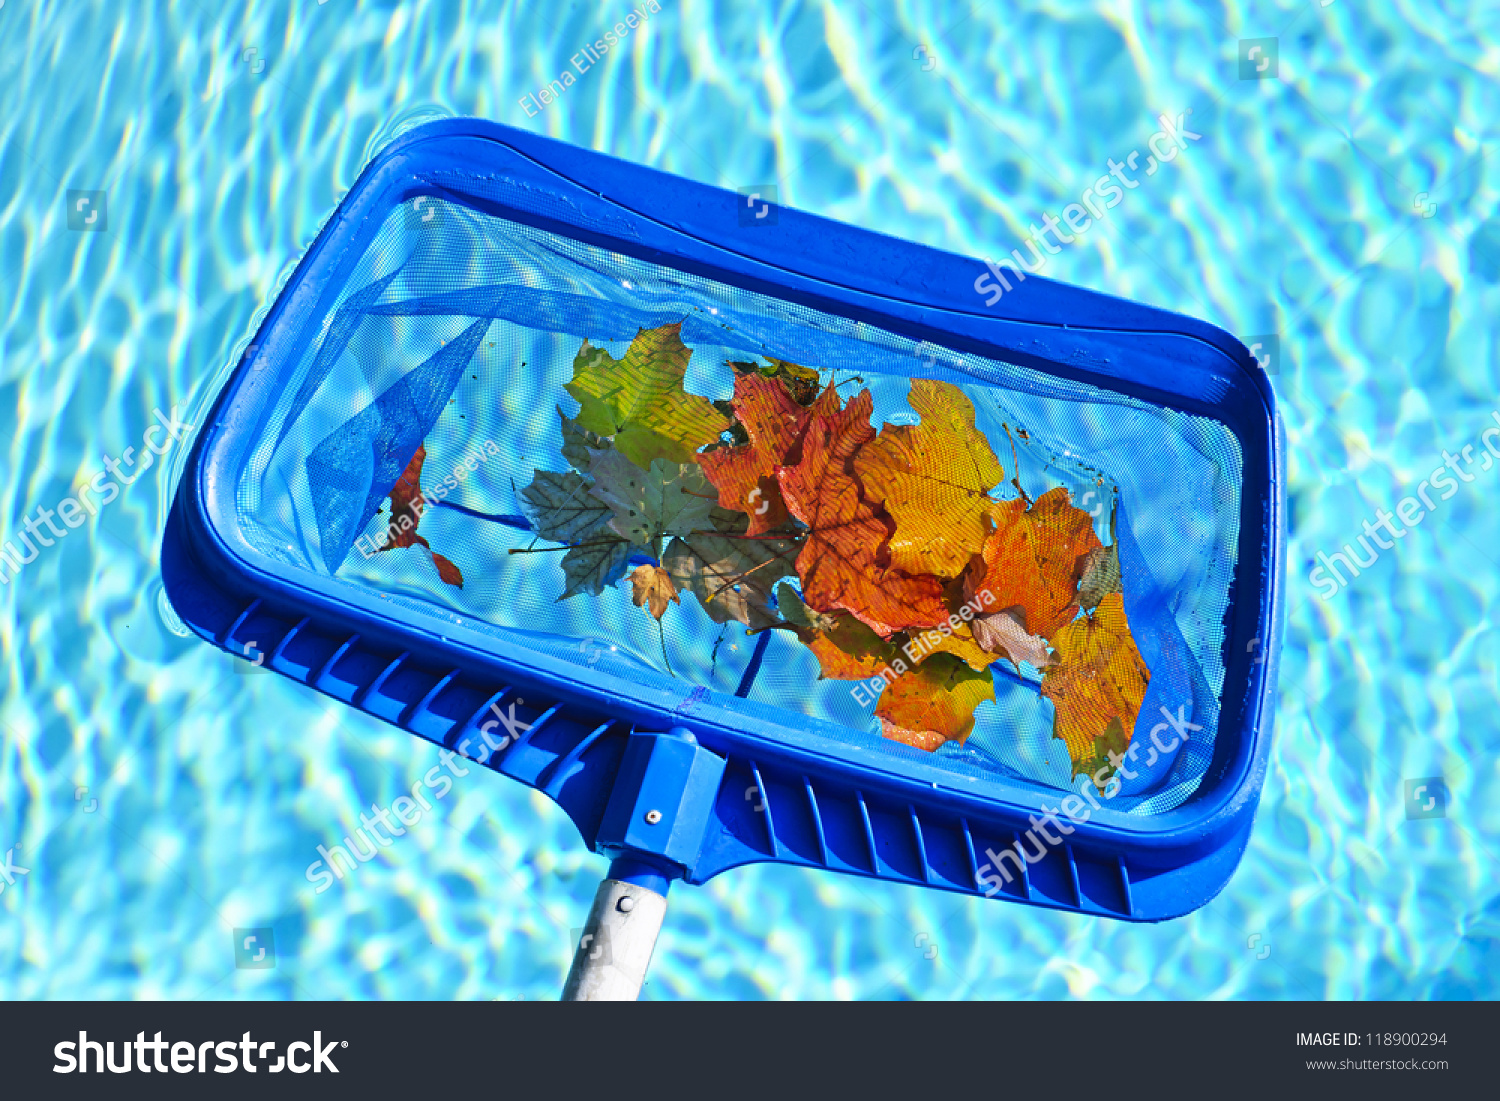 Cleaning Swimming Pool Of Fall Leaves With Blue Skimmer